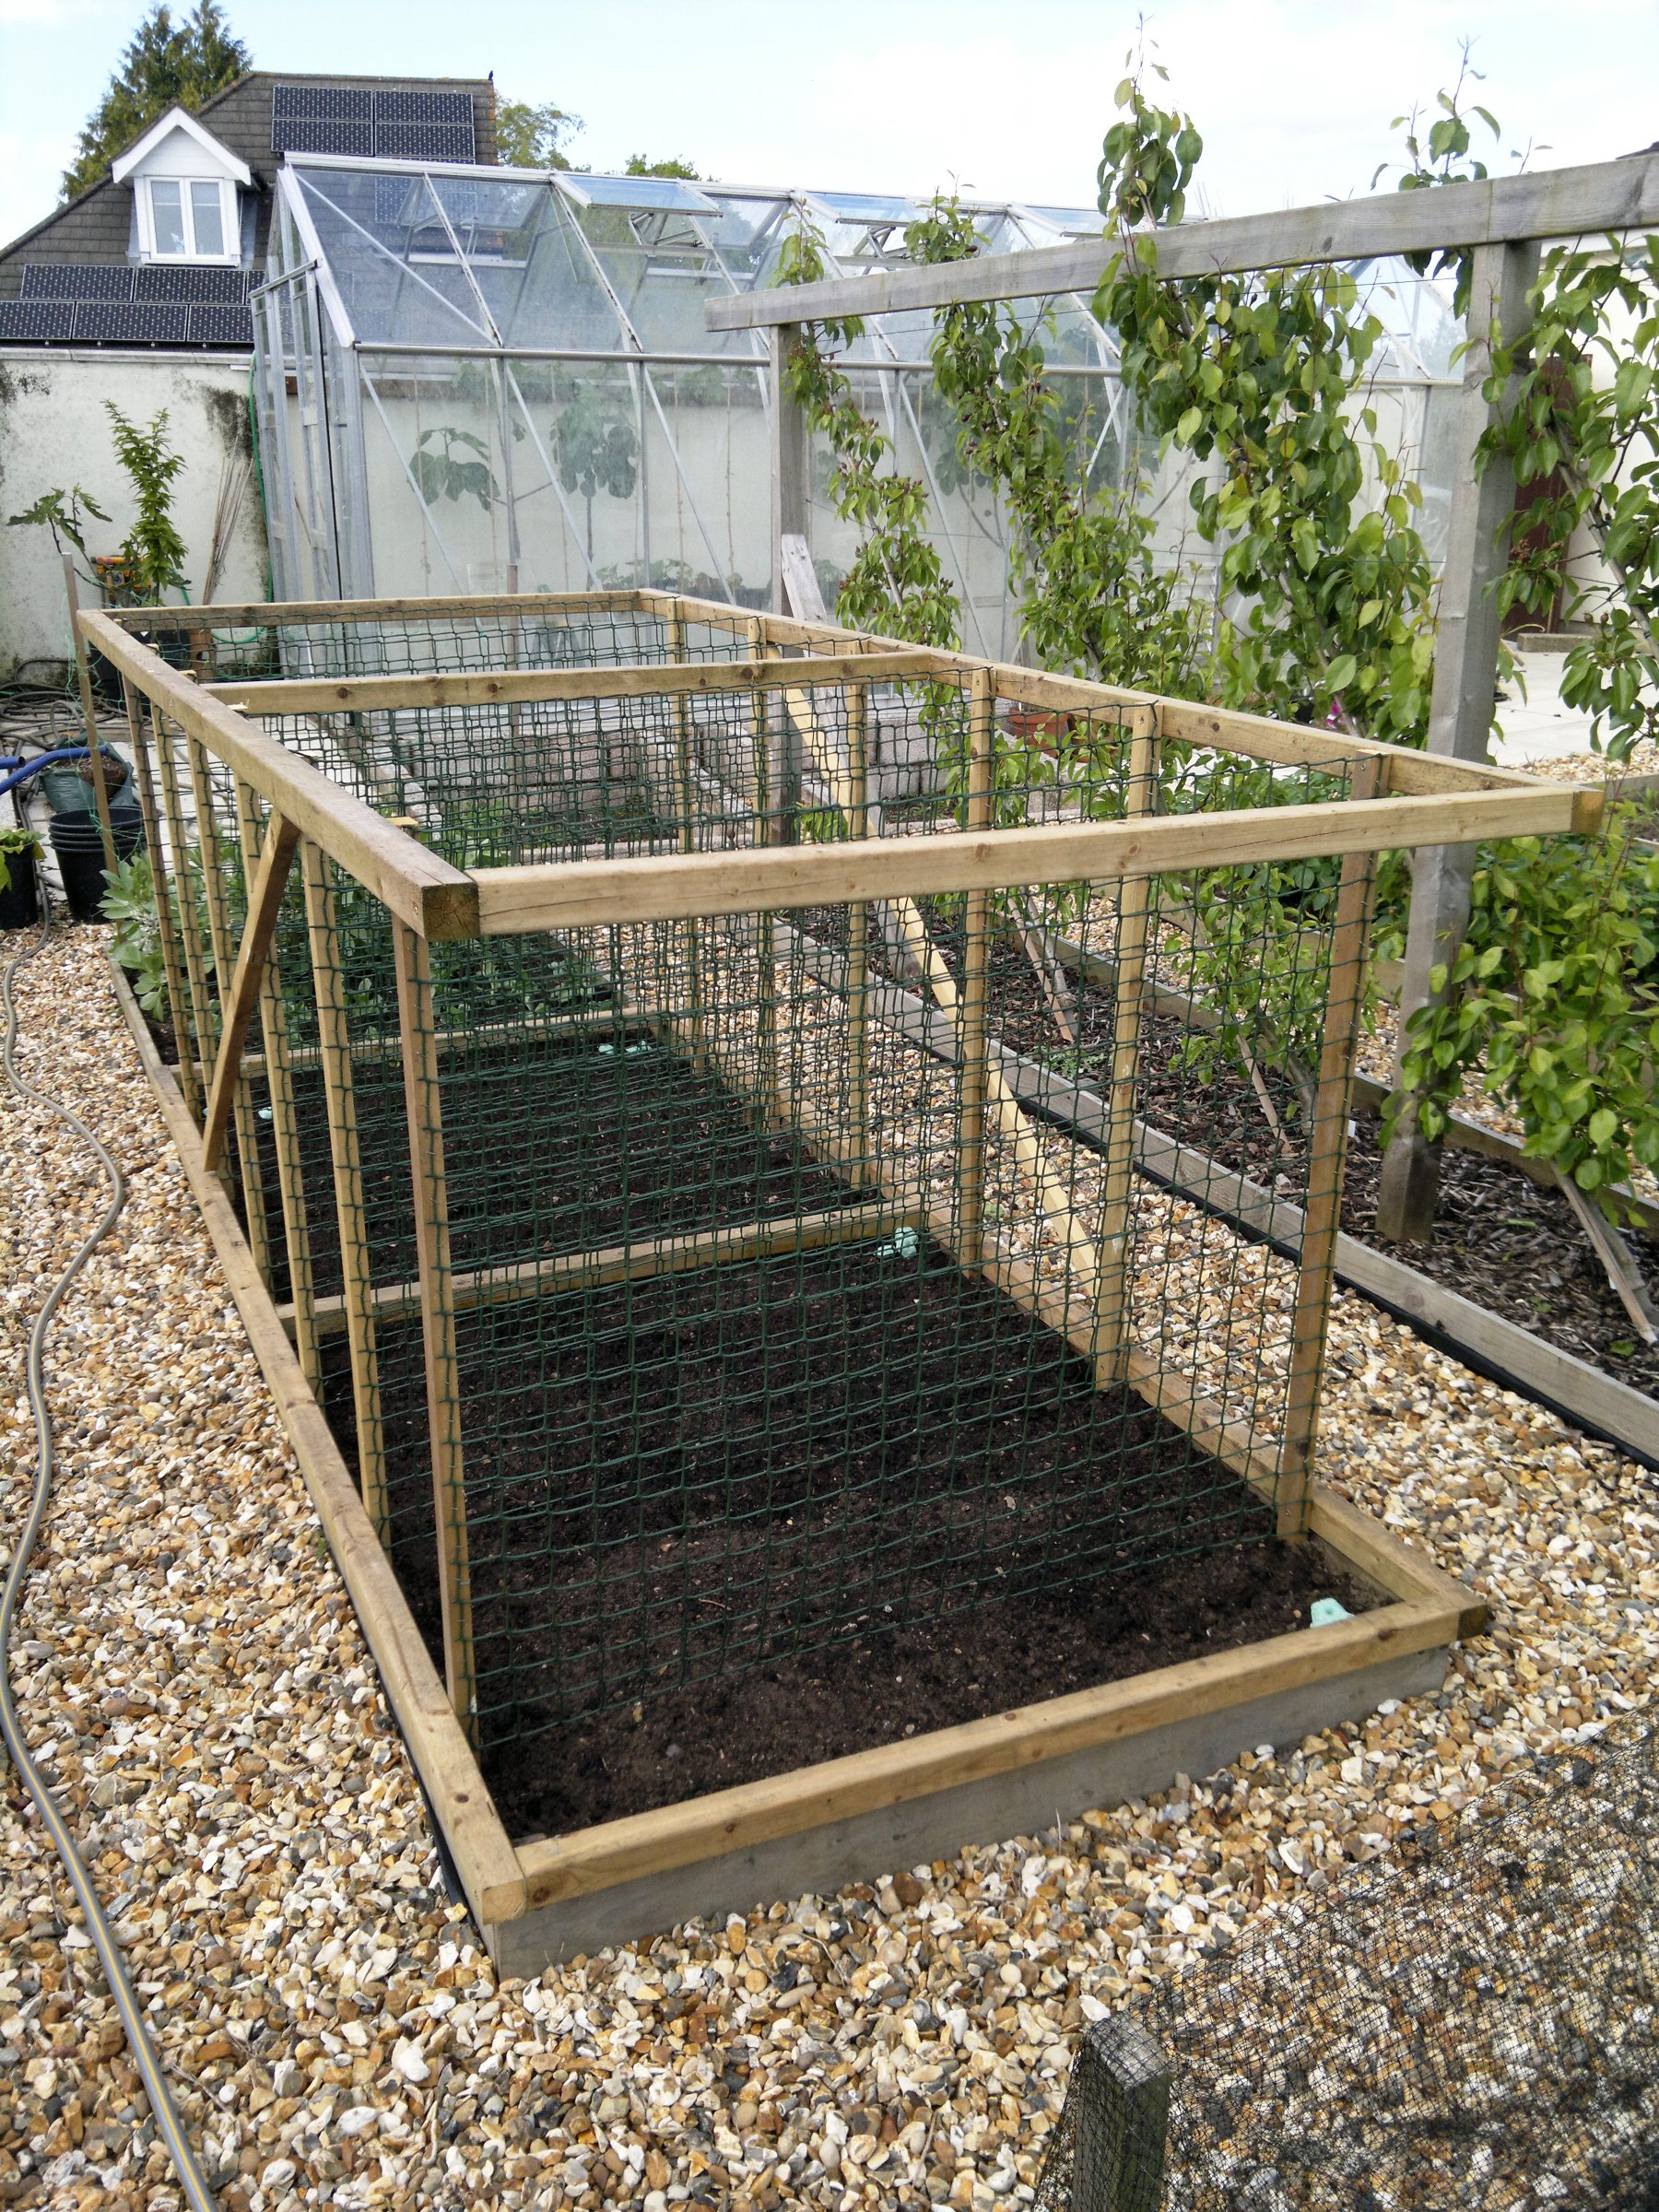 The timber frame and stiff plastic mesh should provide good support for the peas